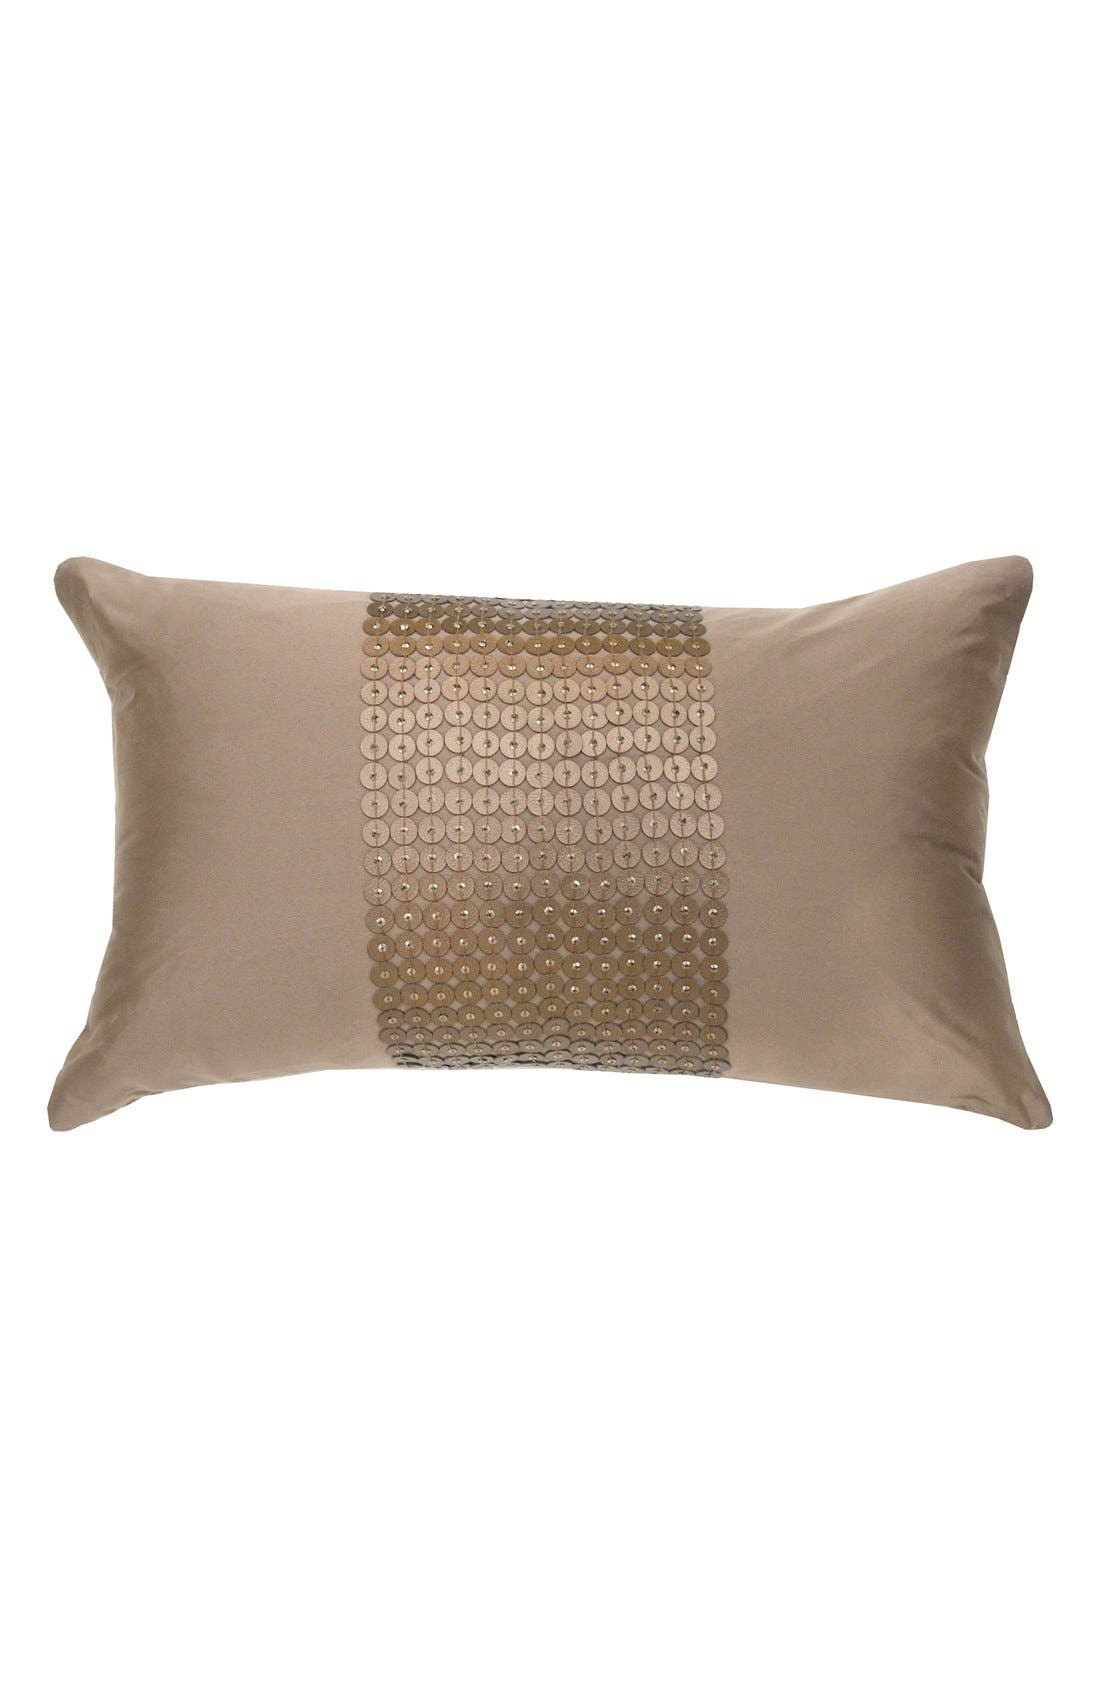 CATHERINE MALANDRINO Metallic Accent Pillow